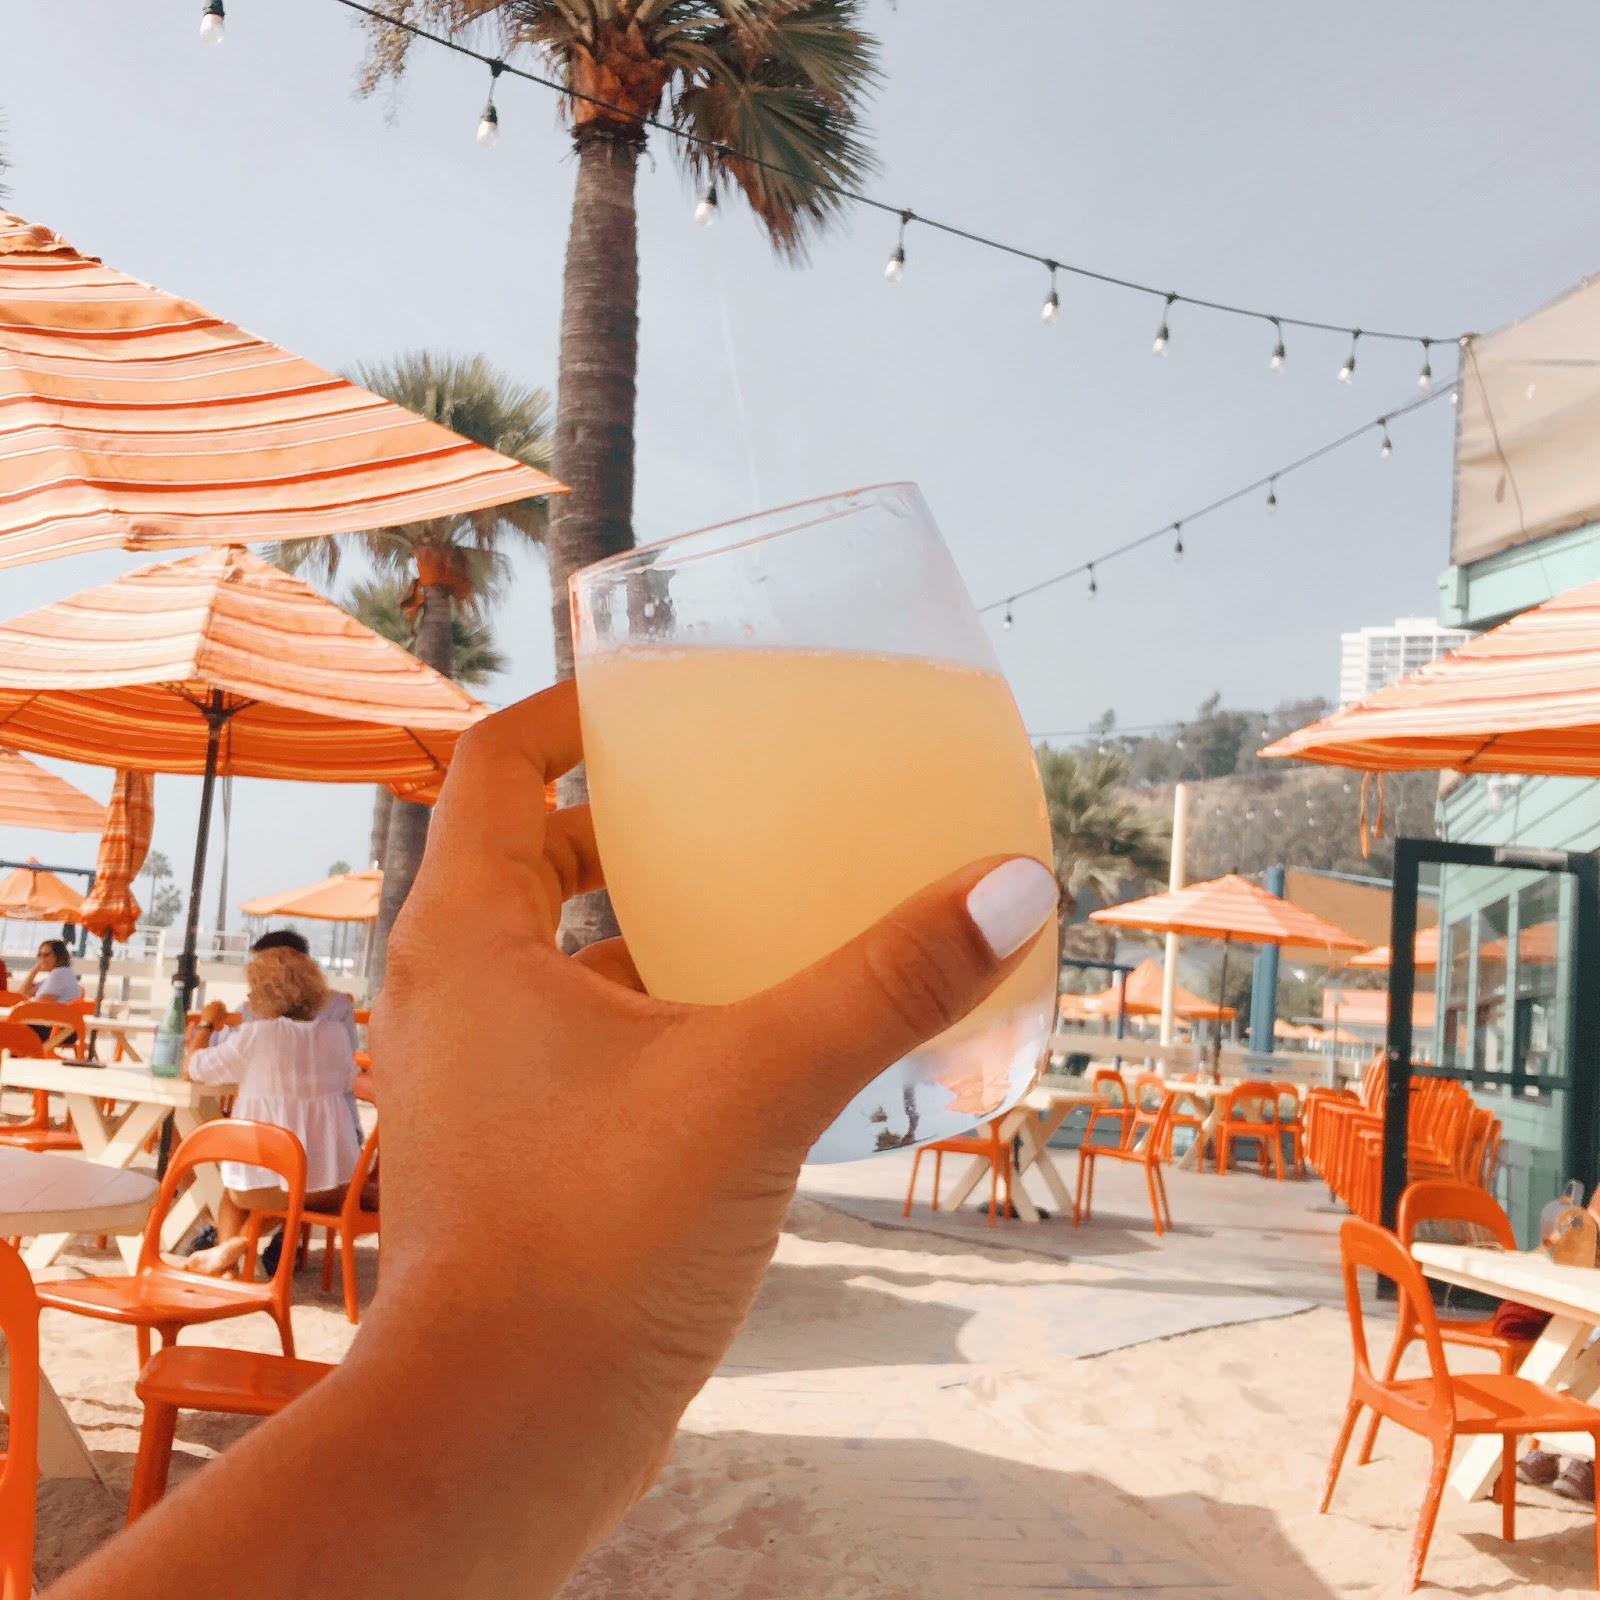 mimosa-santa-monica-beach-back-on-beach-cafe